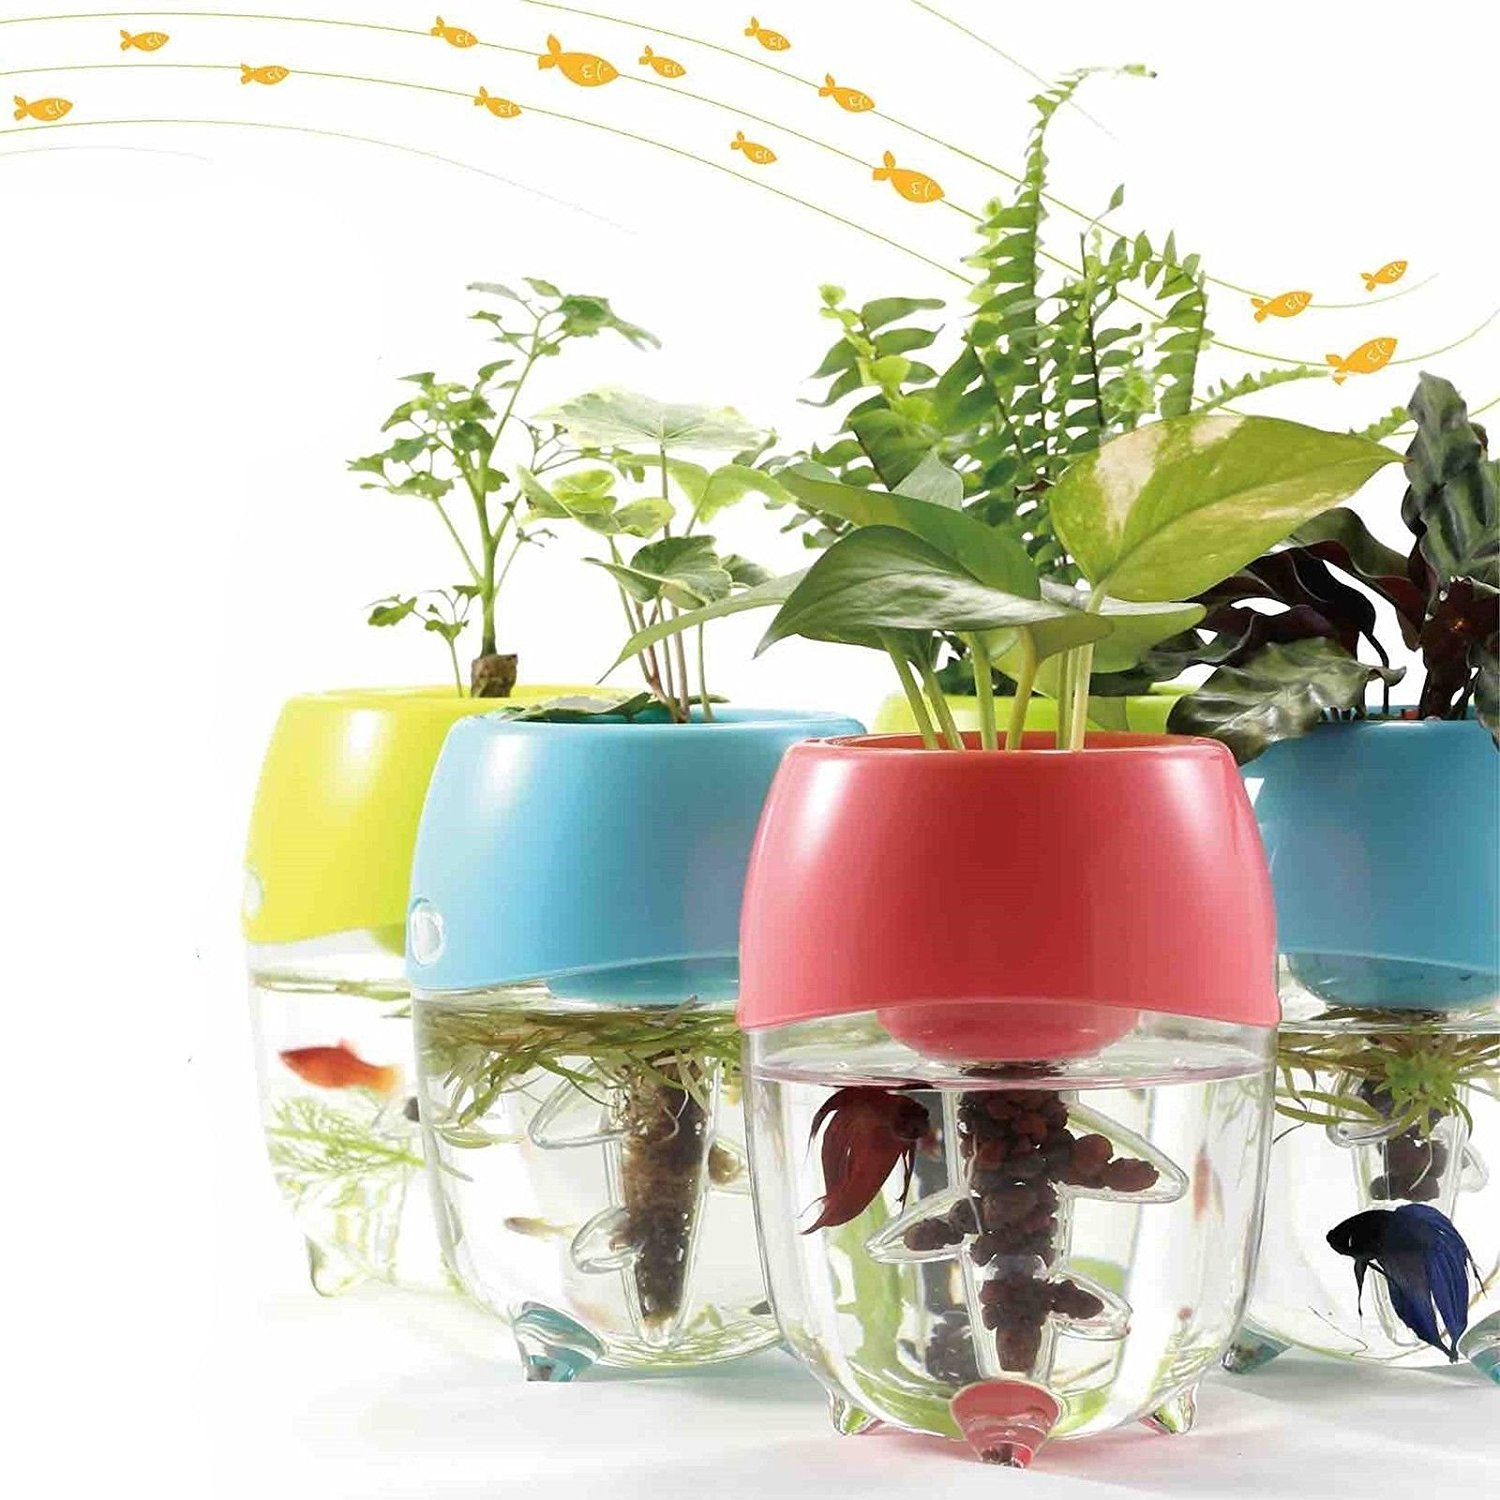 Aquaponic Fish Tank Aquarium For Betta Fish With Water Garden Planter Top  Lid Natural Ecosystem For Plant Growth (Pink)